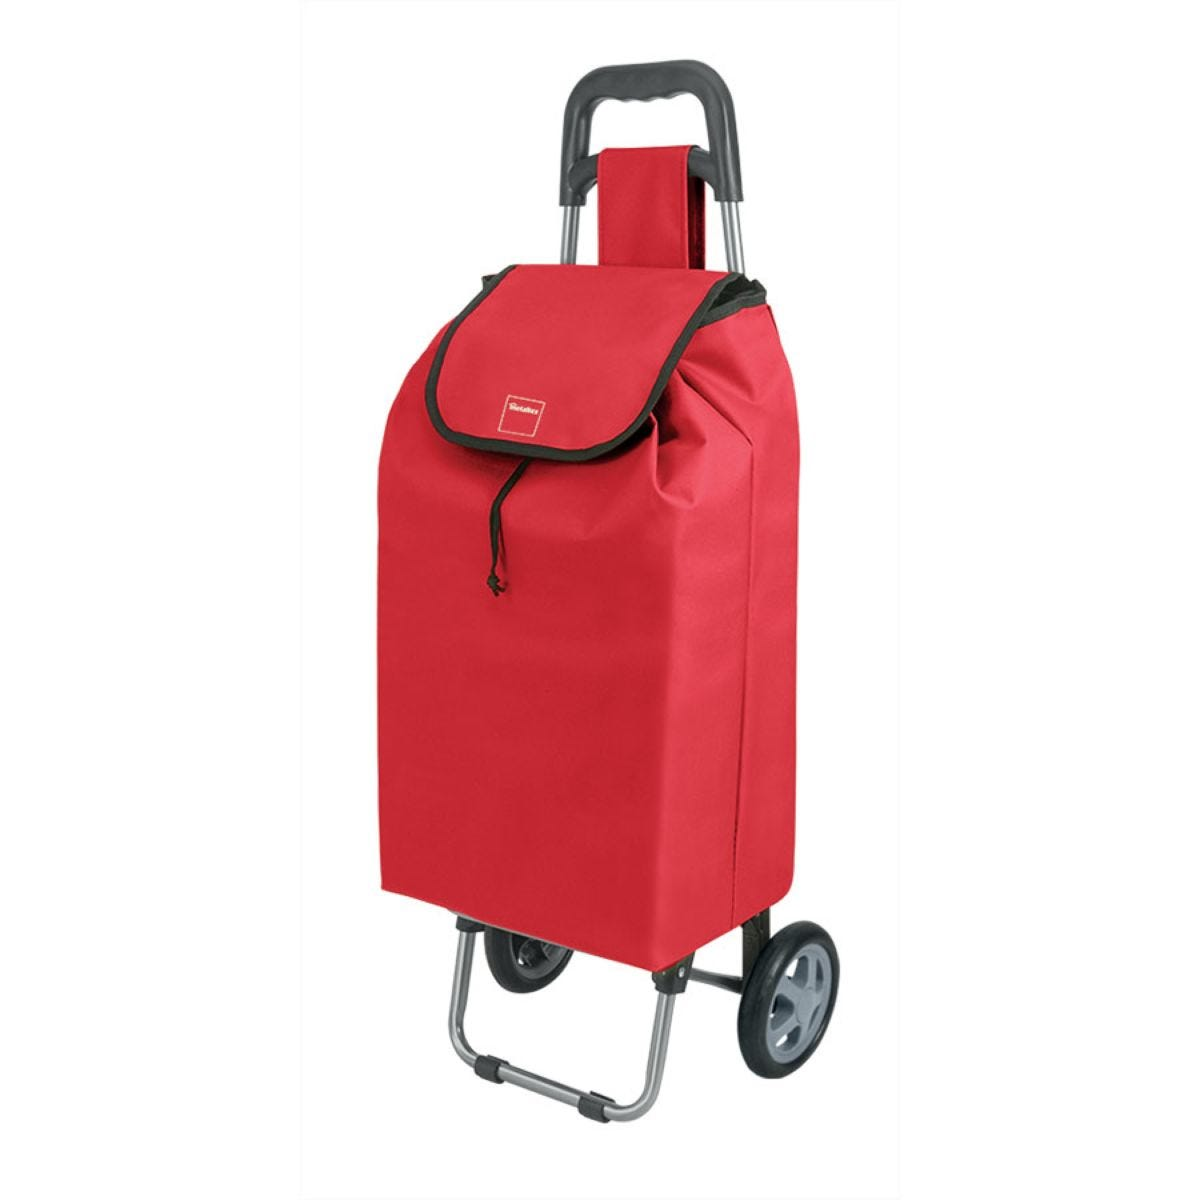 Metaltex 40L Daphne Shopping Trolley - Red